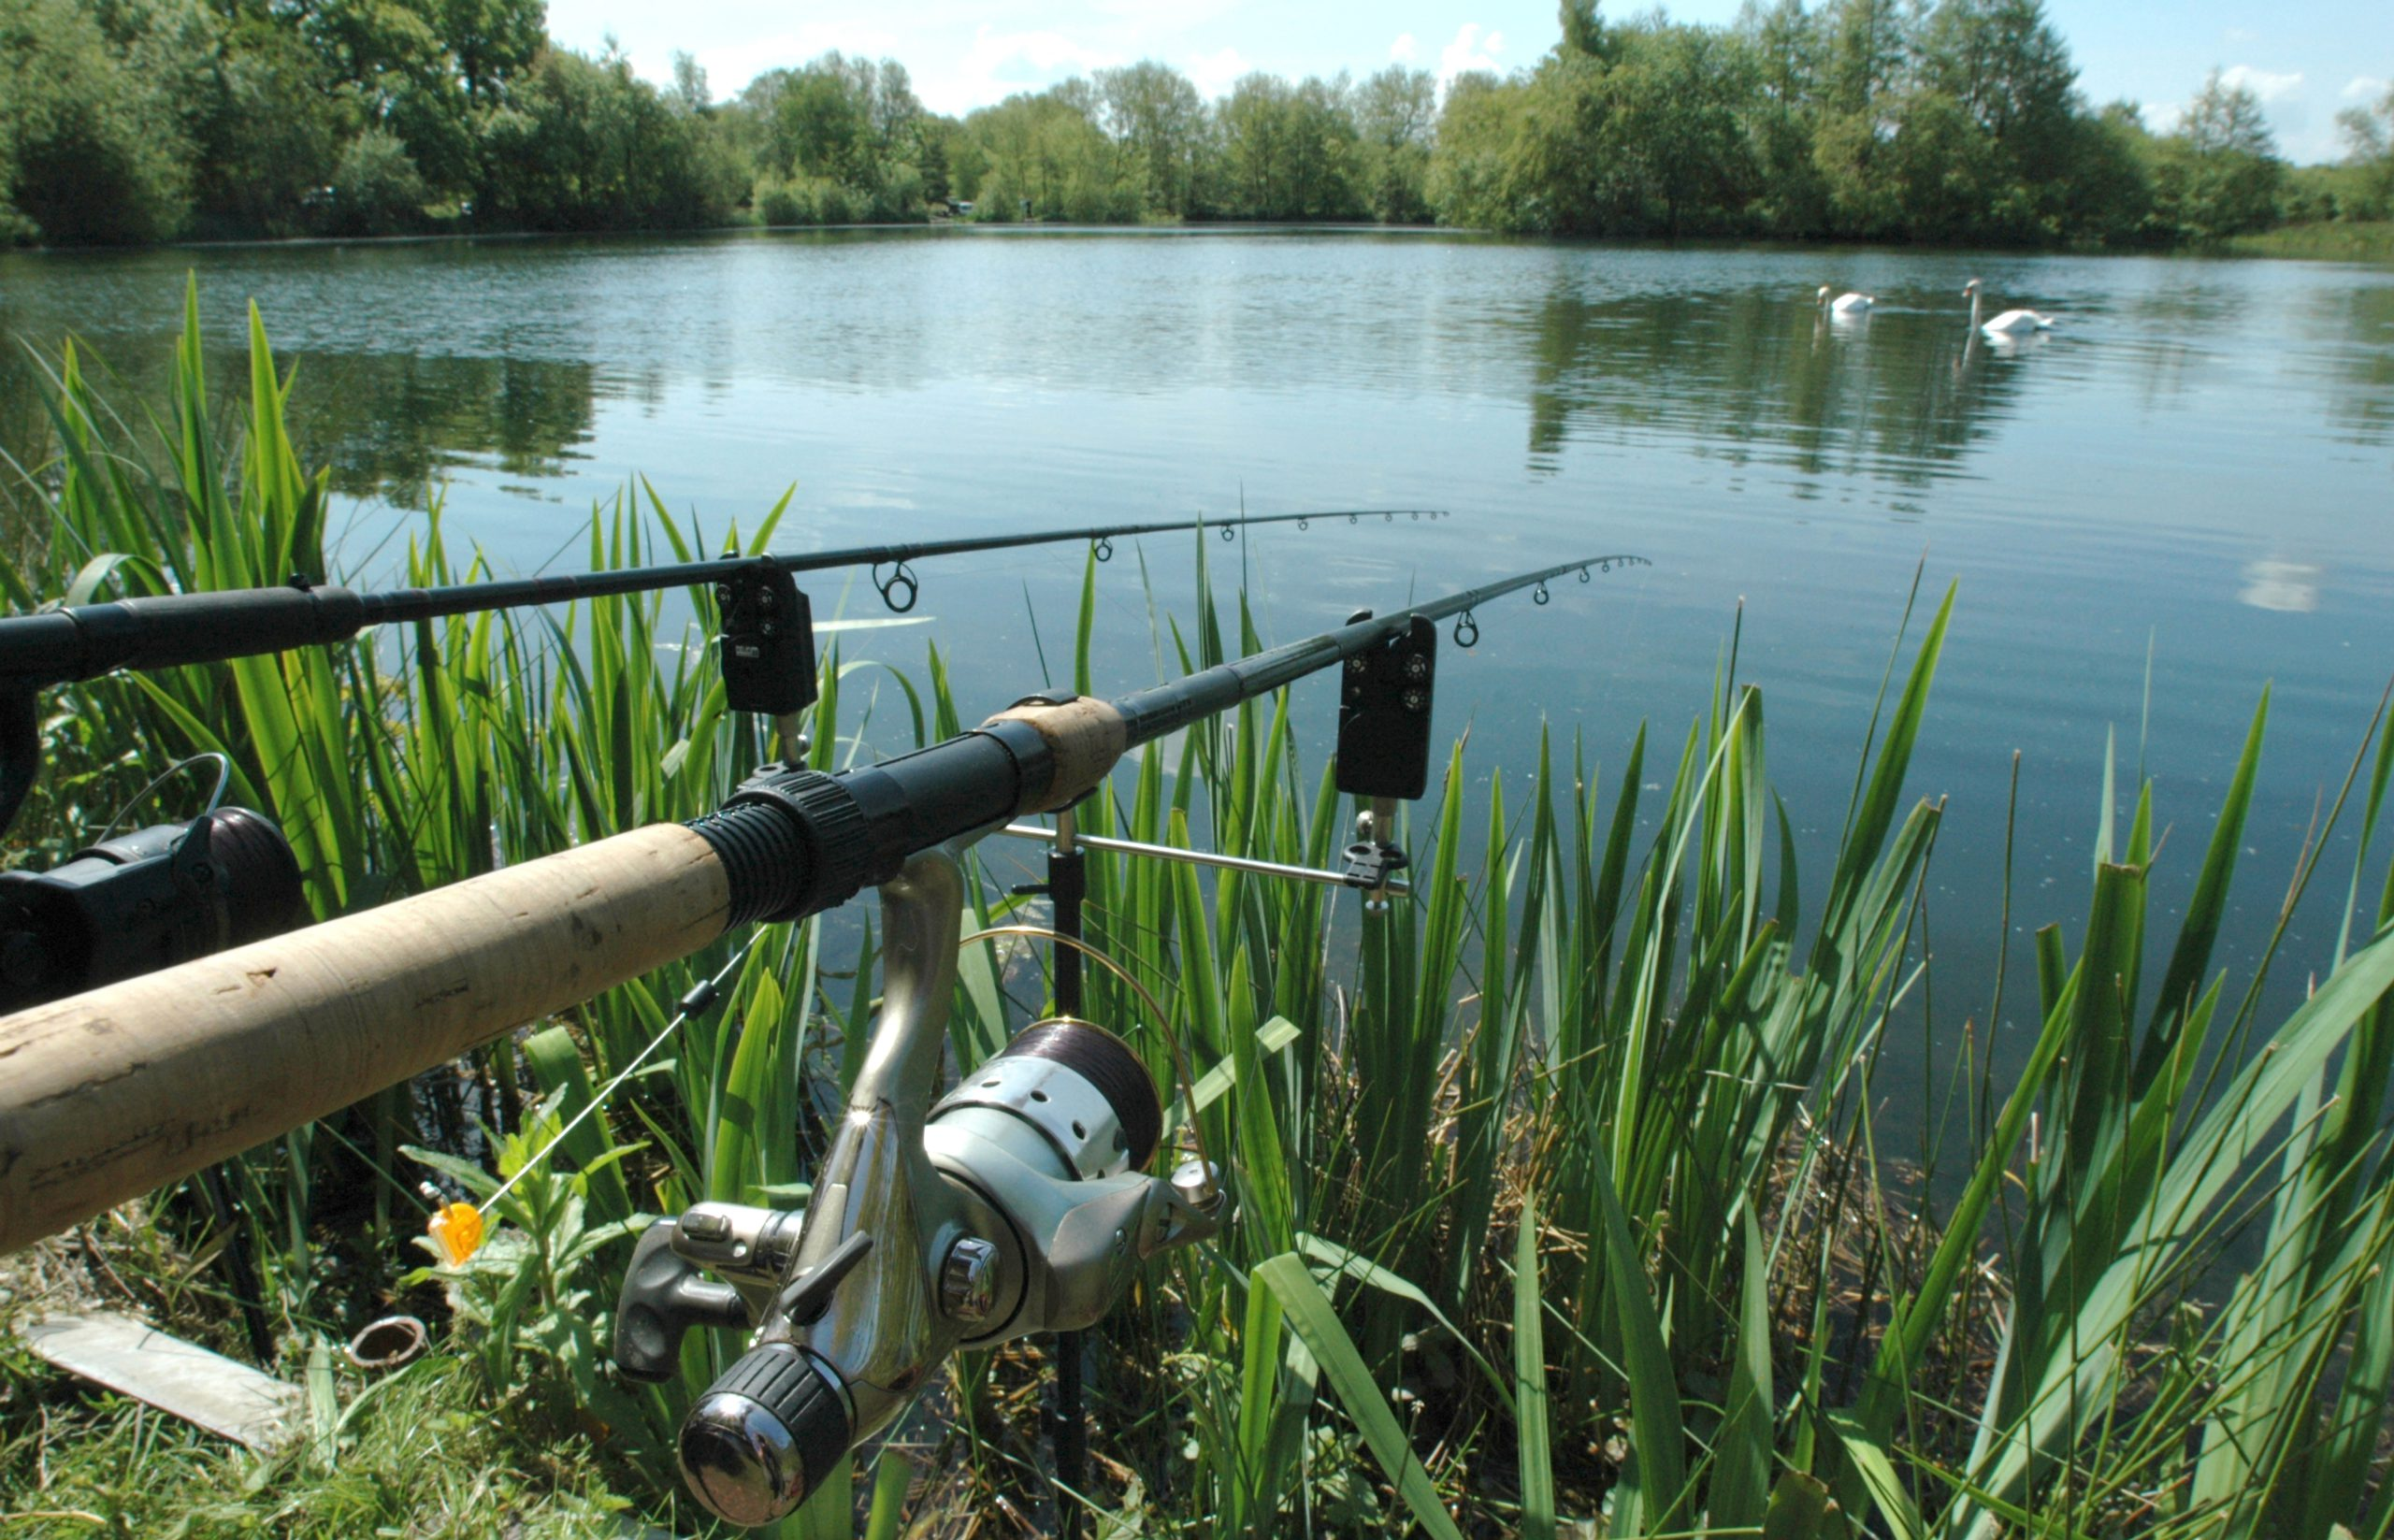 Spinning rods in rod holders with lines in the water.